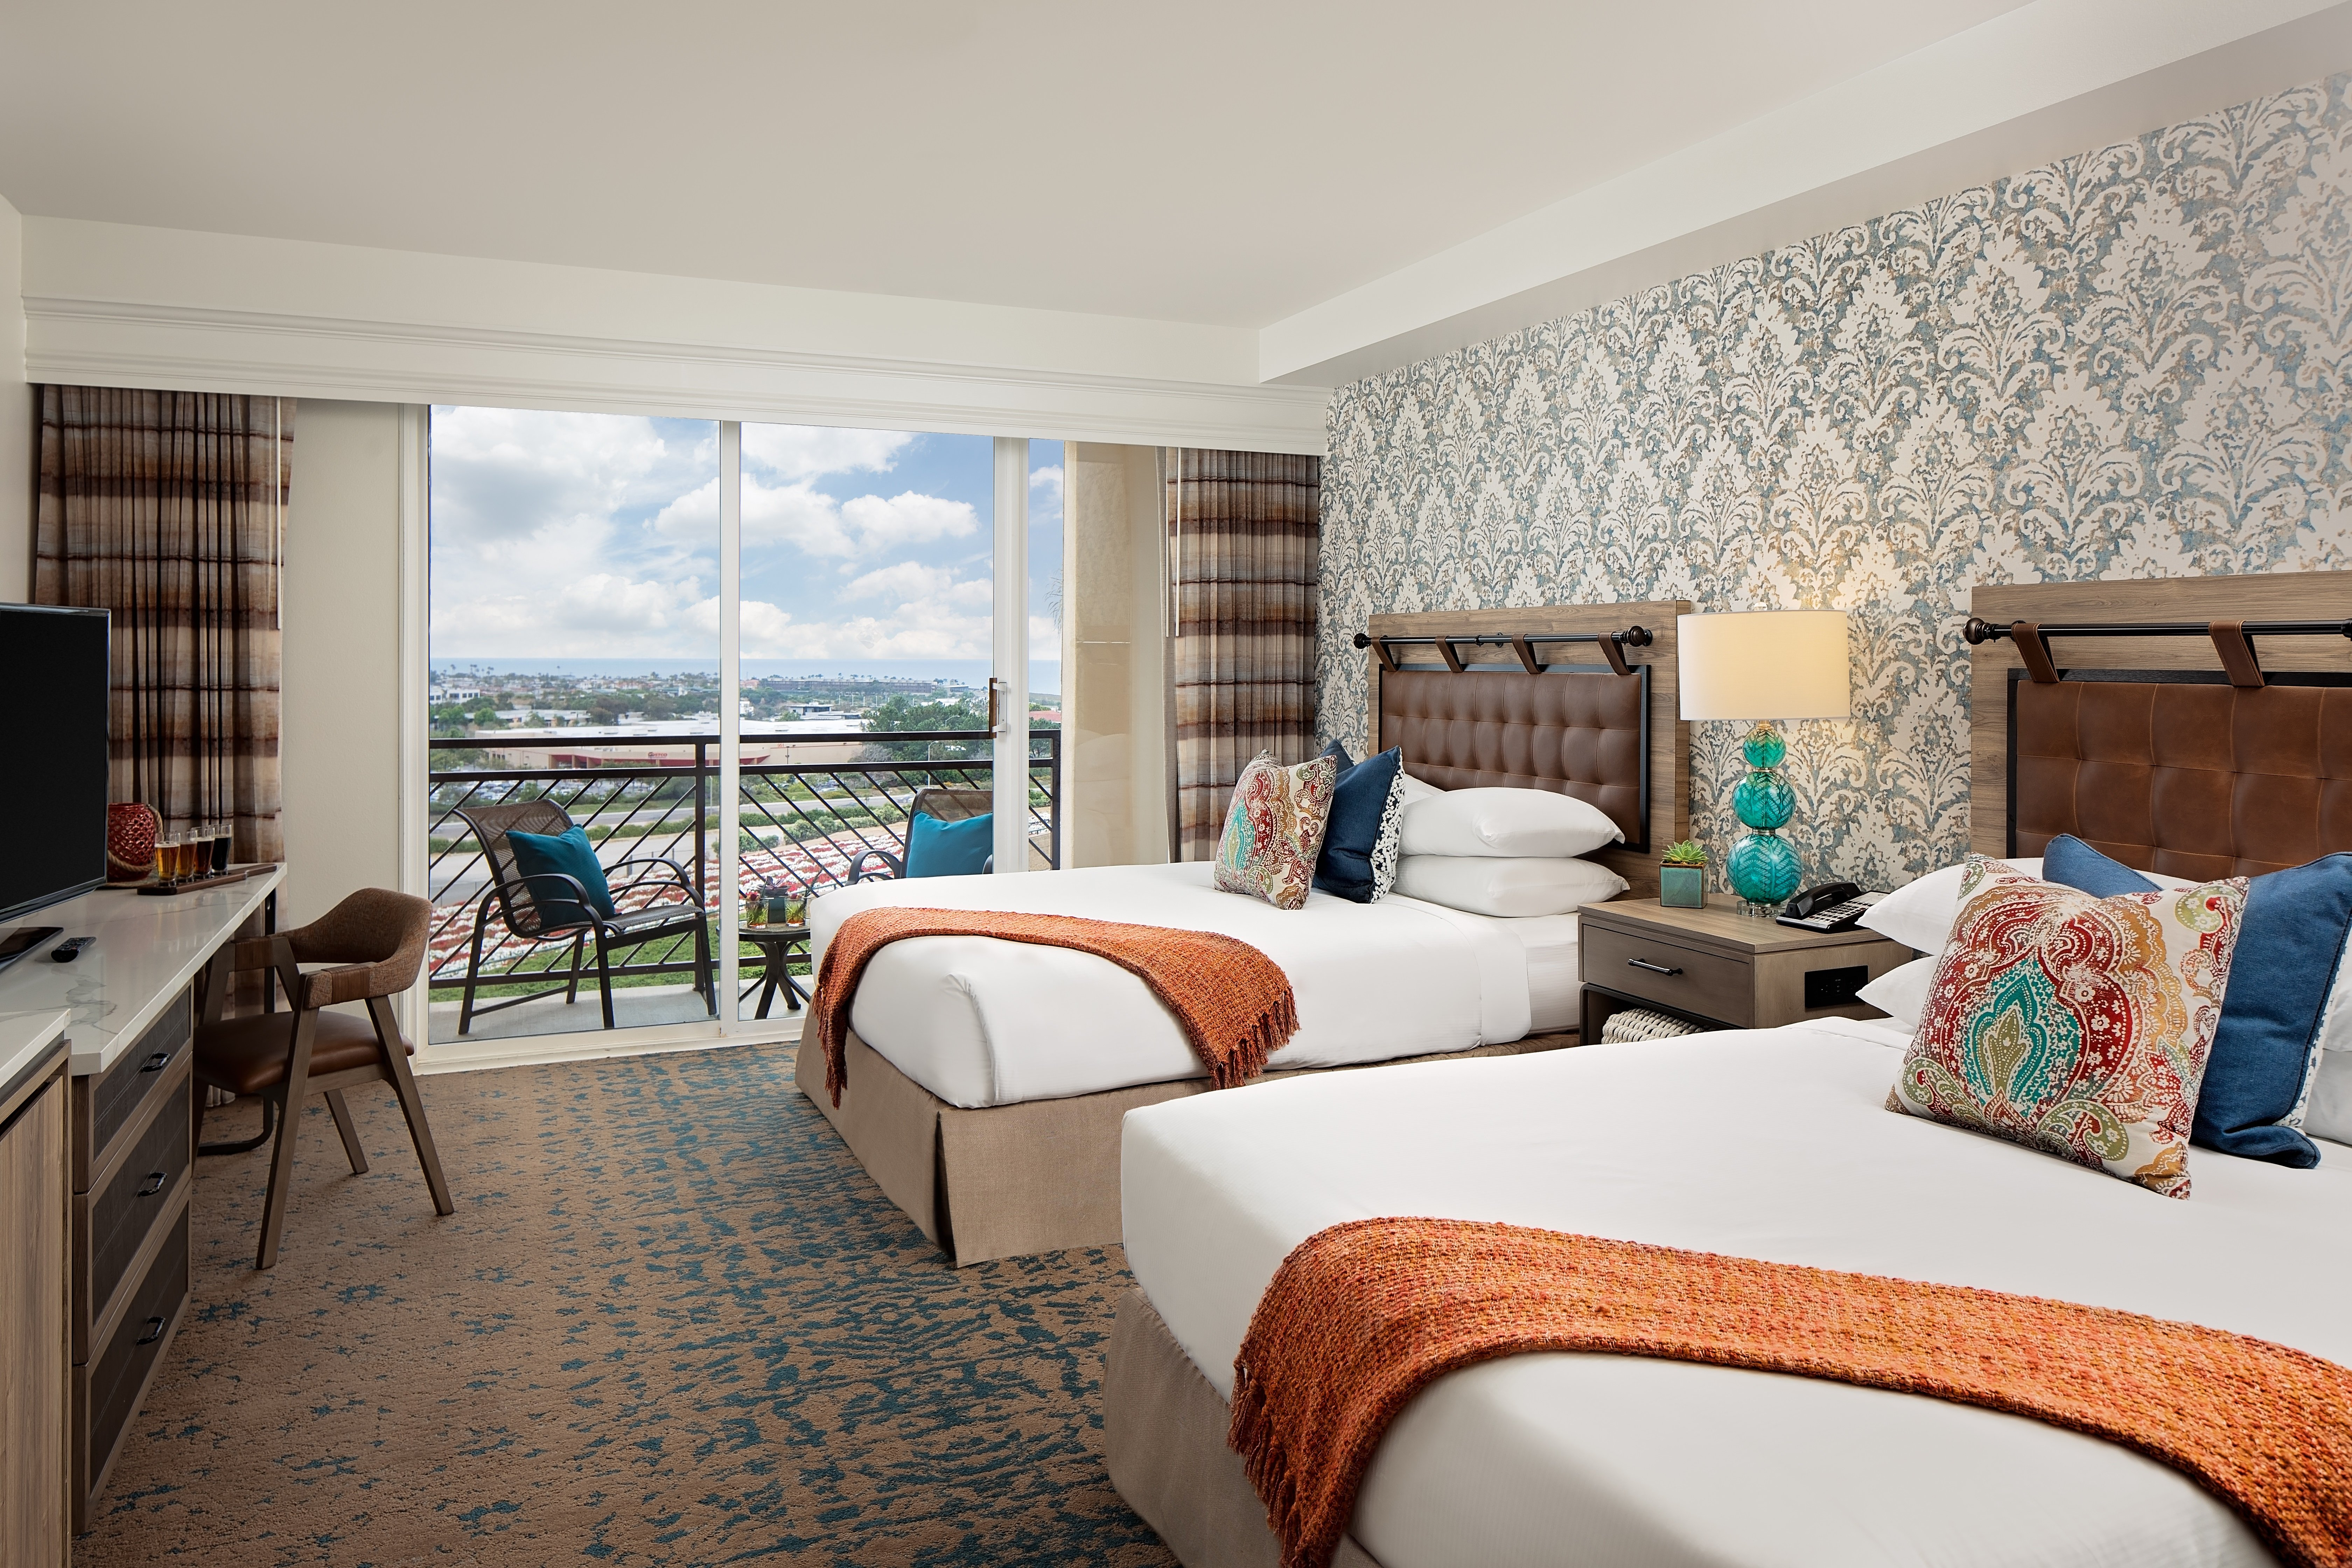 A two queen room interior at Cassara Carlsbad